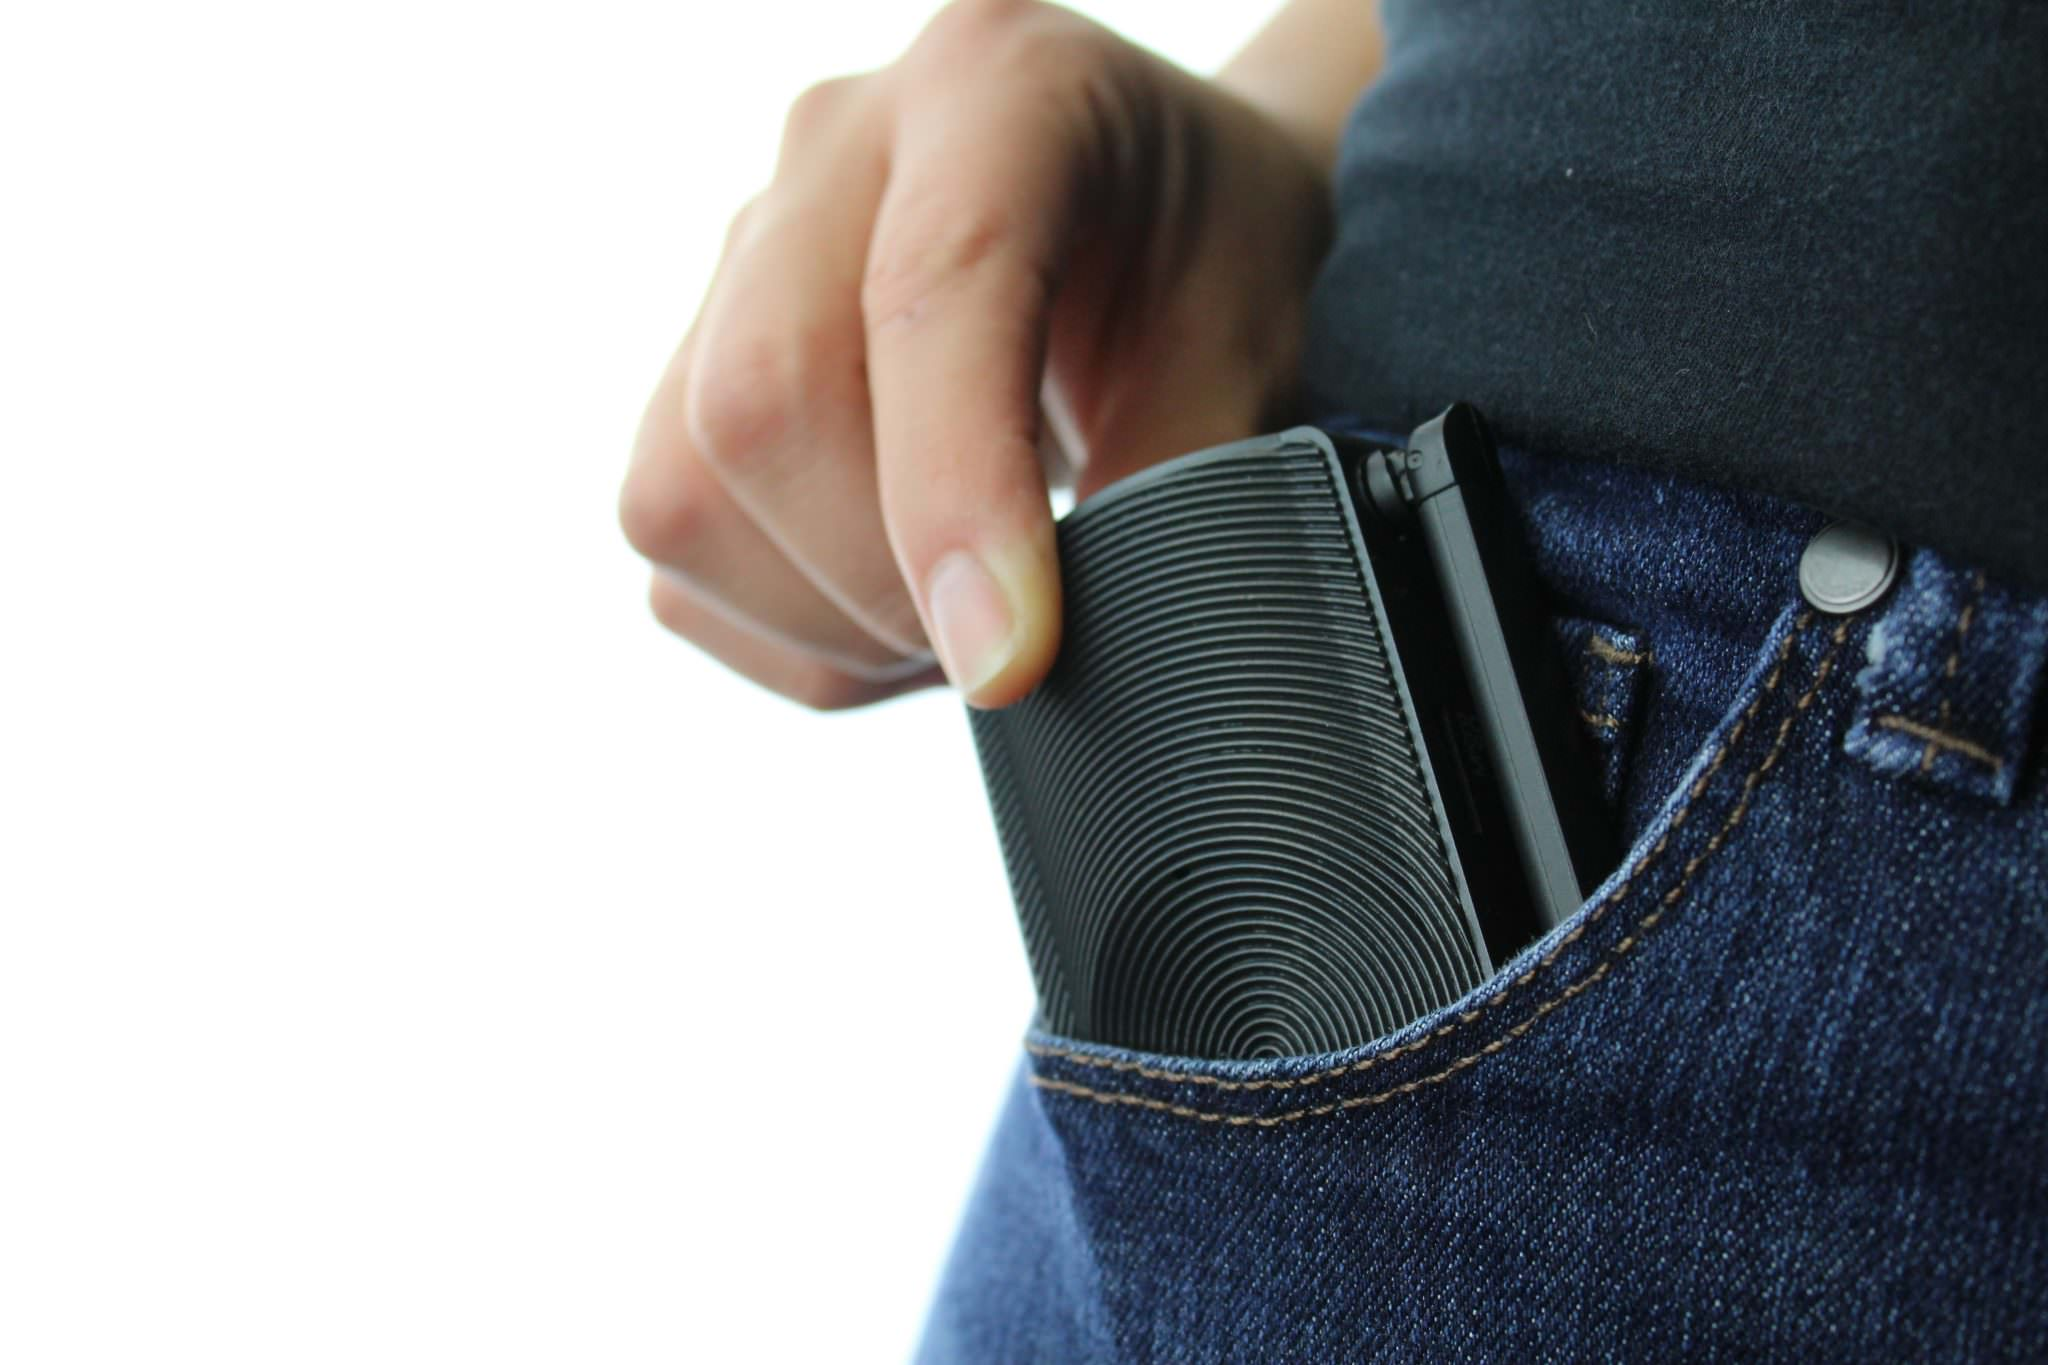 Carry the Access in your pocket